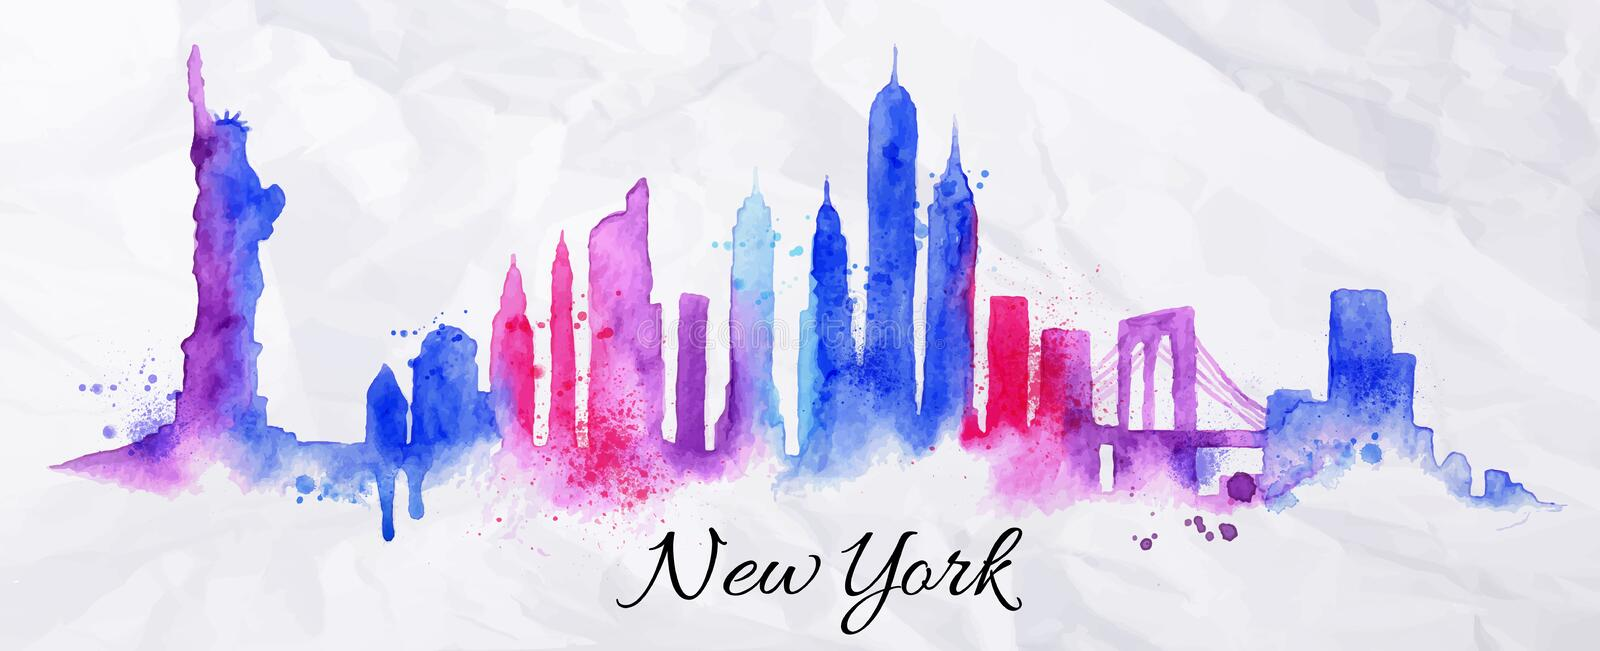 Konturvattenfärg New York royaltyfri illustrationer